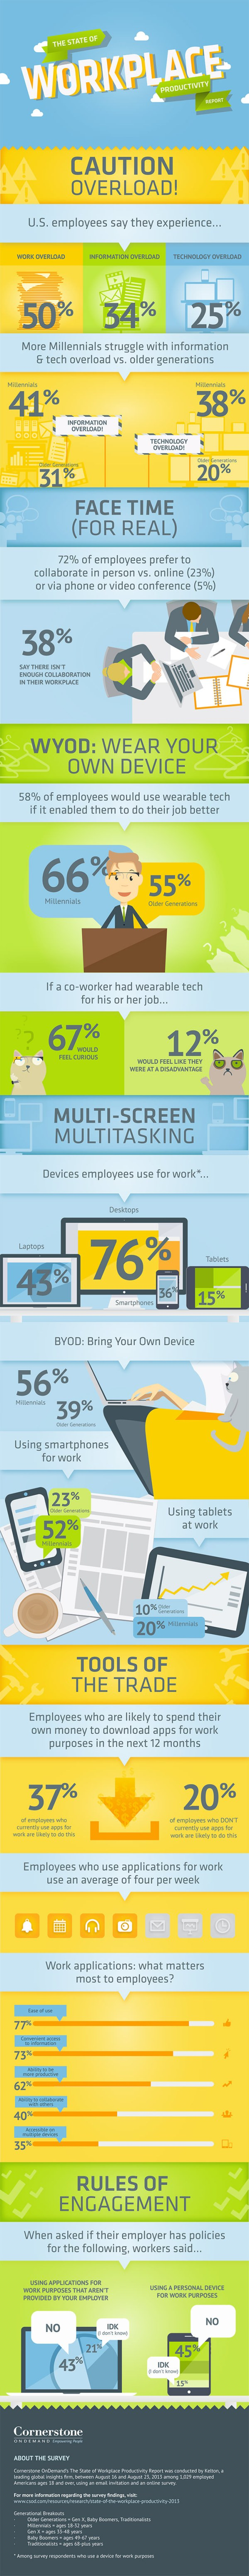 csod-infographic-state-of-workplace-2013